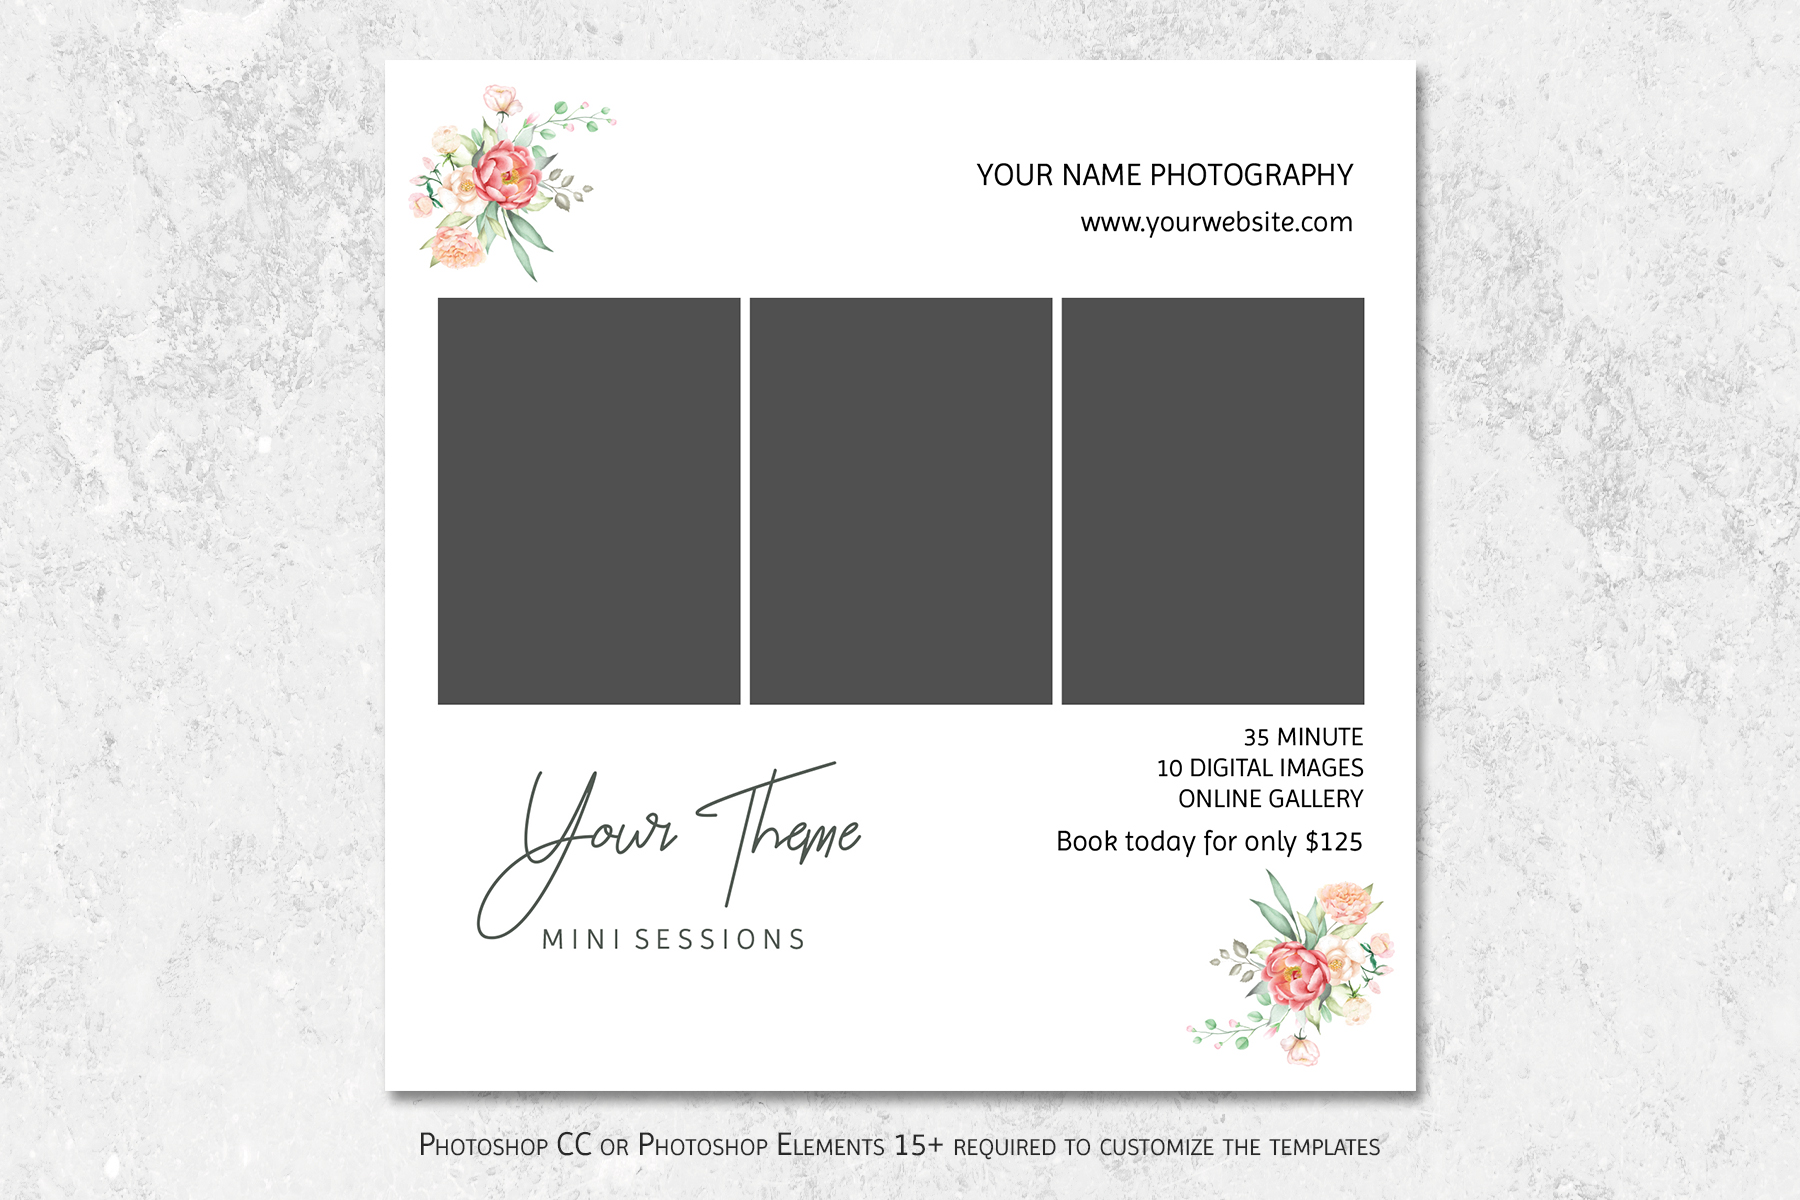 Mini Sessions Marketing Templates example image 2